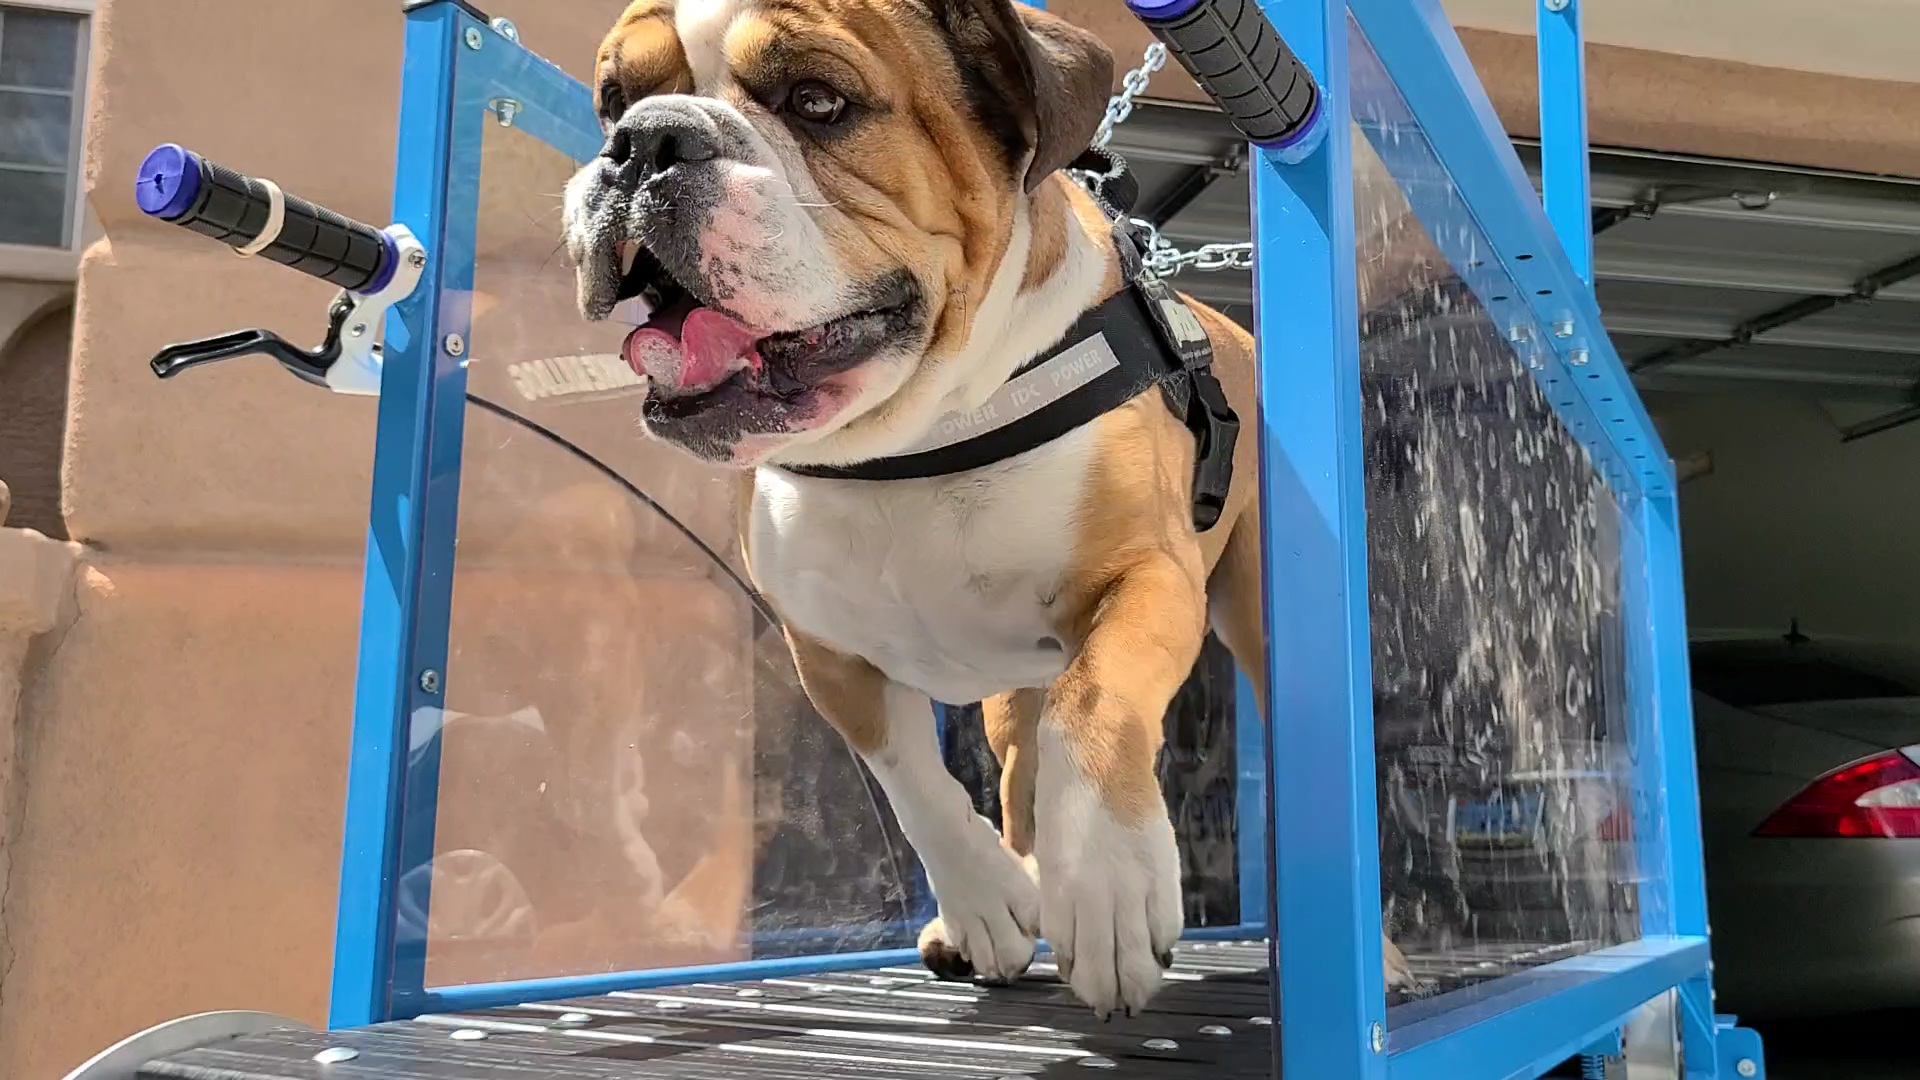 Is A Treadmill Bad For Dogs?